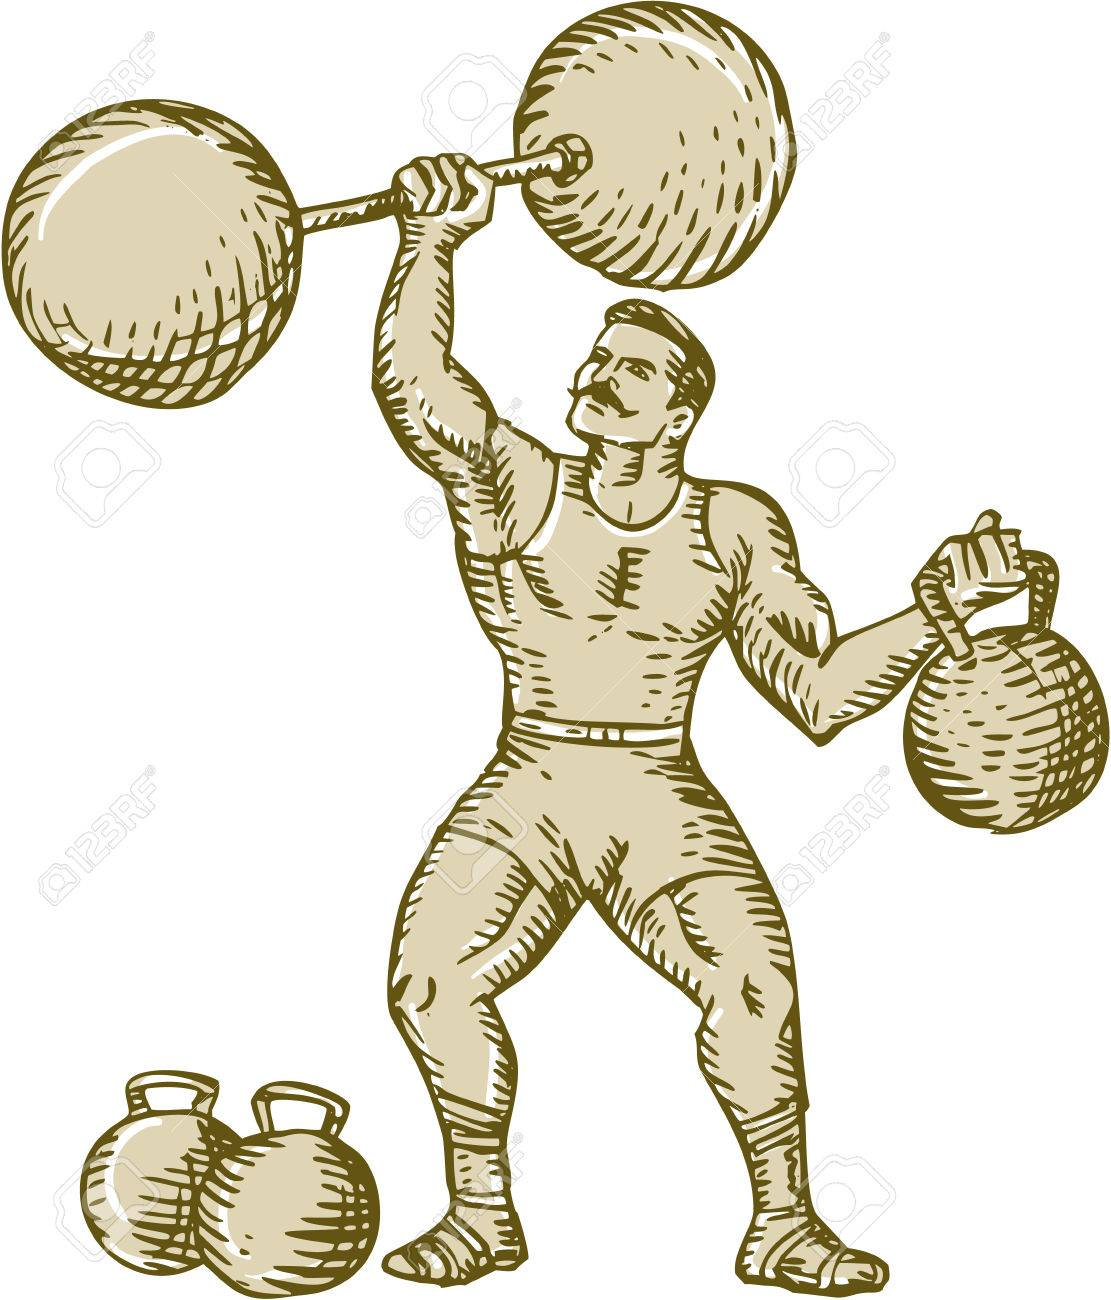 Etching engraving handmade style illustration of a strongman circus performer lifting barbell on one hand and kettlebell on the other hand set on isolated white background. - 40593713